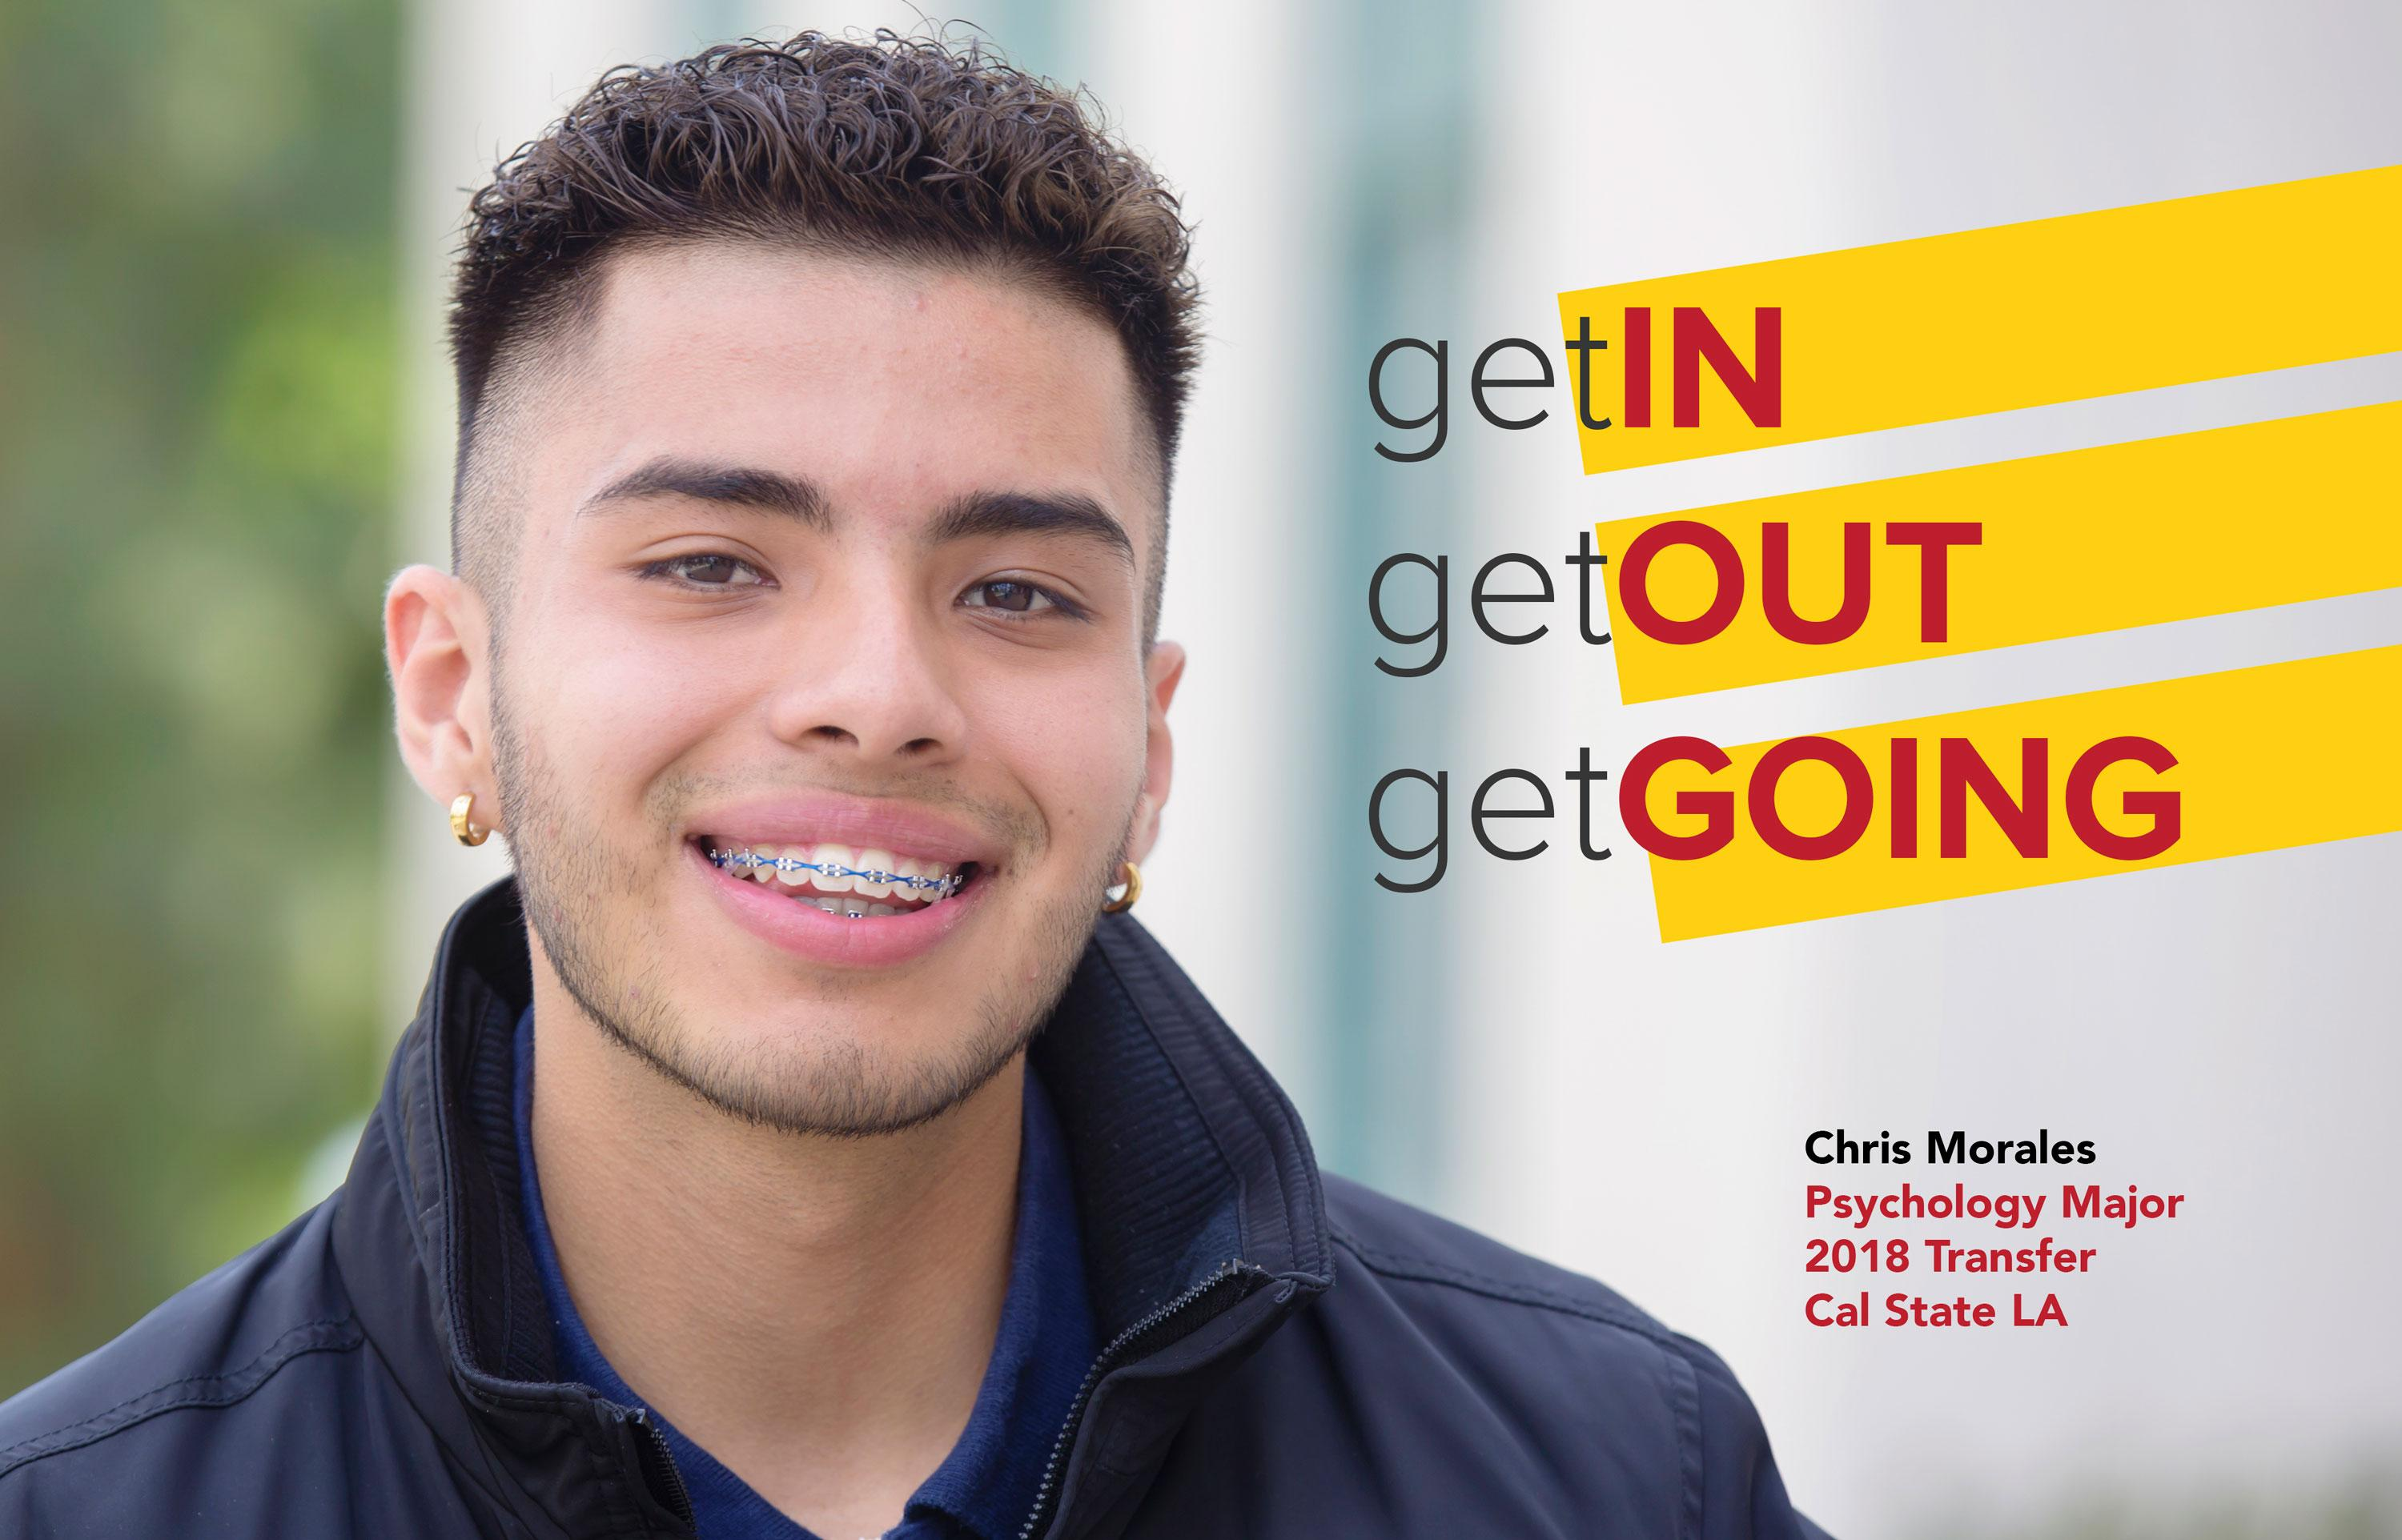 Chris Morales is a Psychology Major, transferring to Cal State LA in 2018.